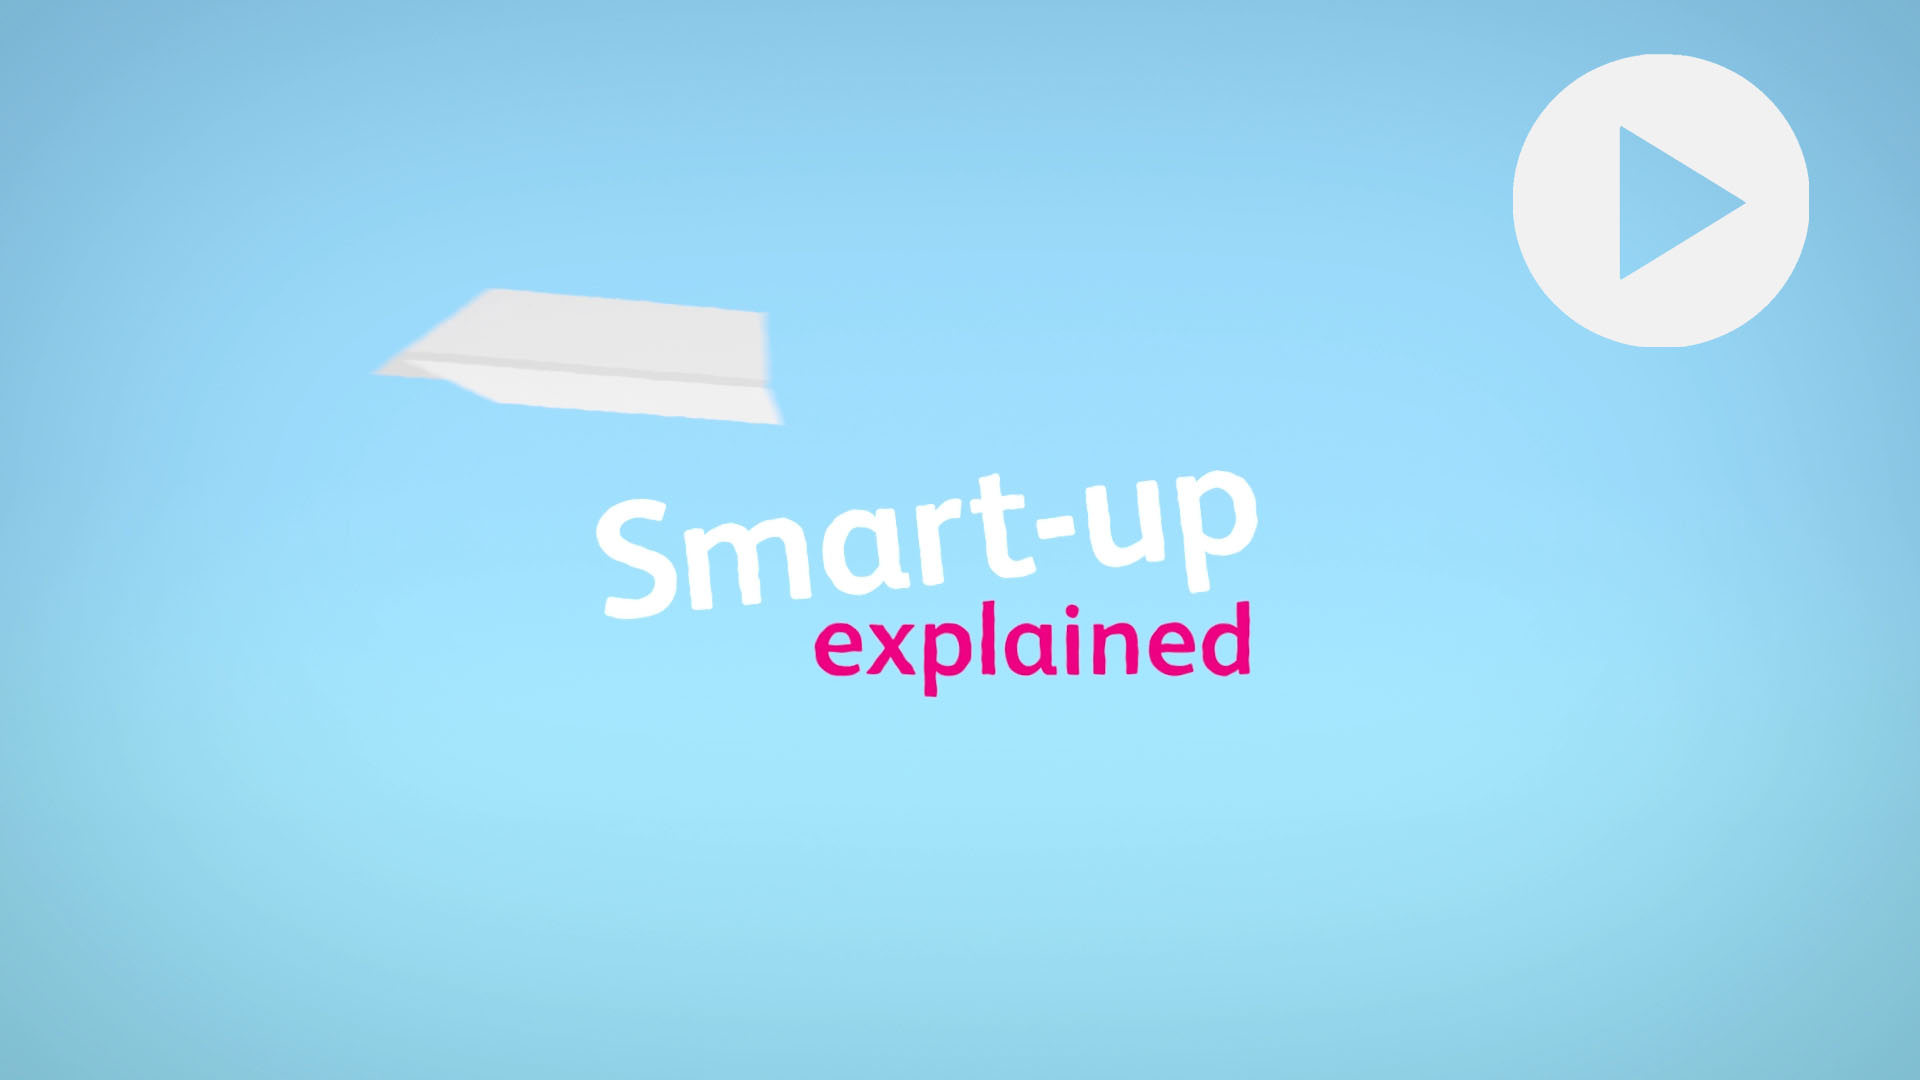 Smart-up explained Video